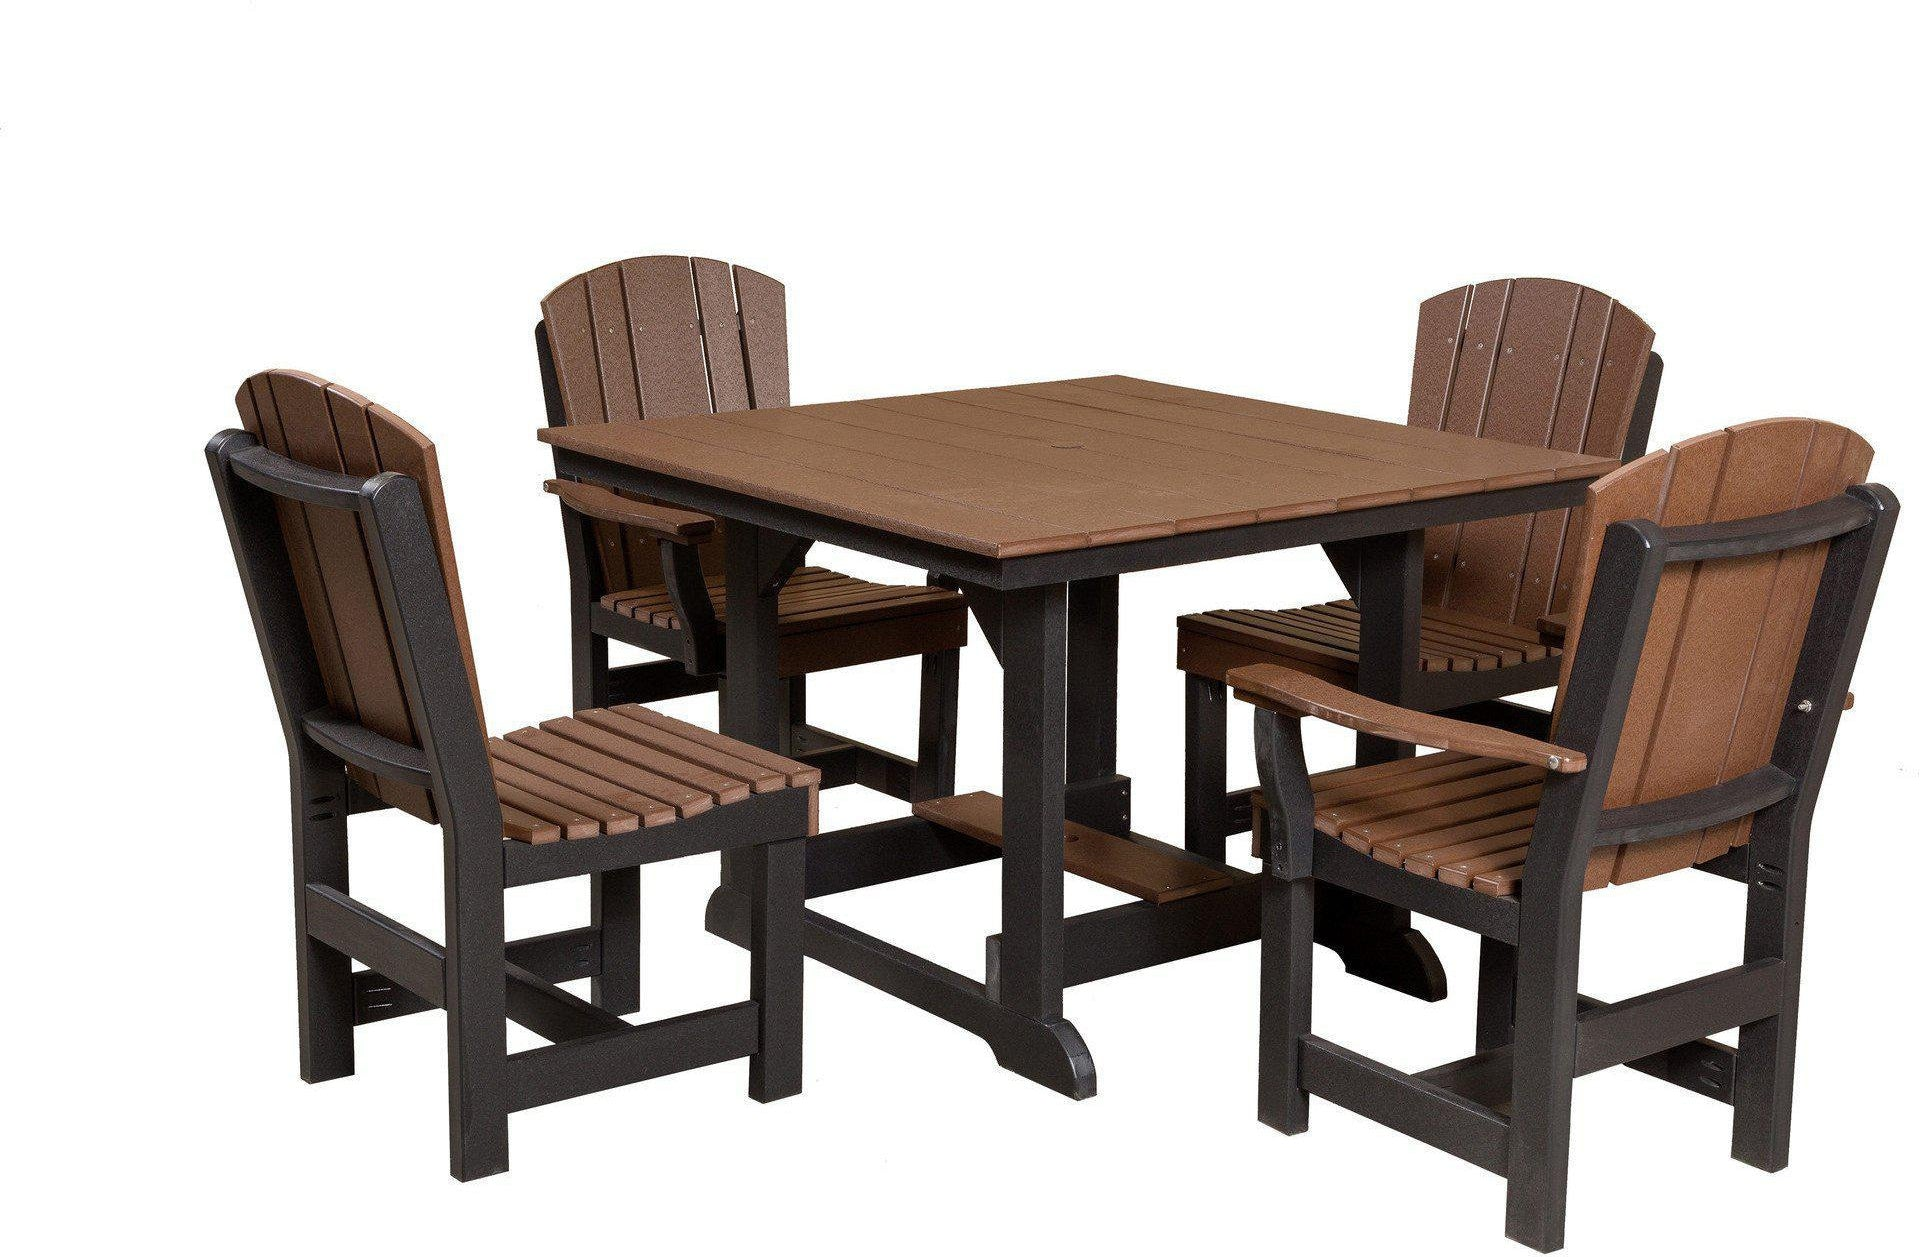 Black outdoor dining table - Wildridge Recycled Plastic Heritage 5 Piece Square Outdoor Dining Set Tudor Brown Black Frame